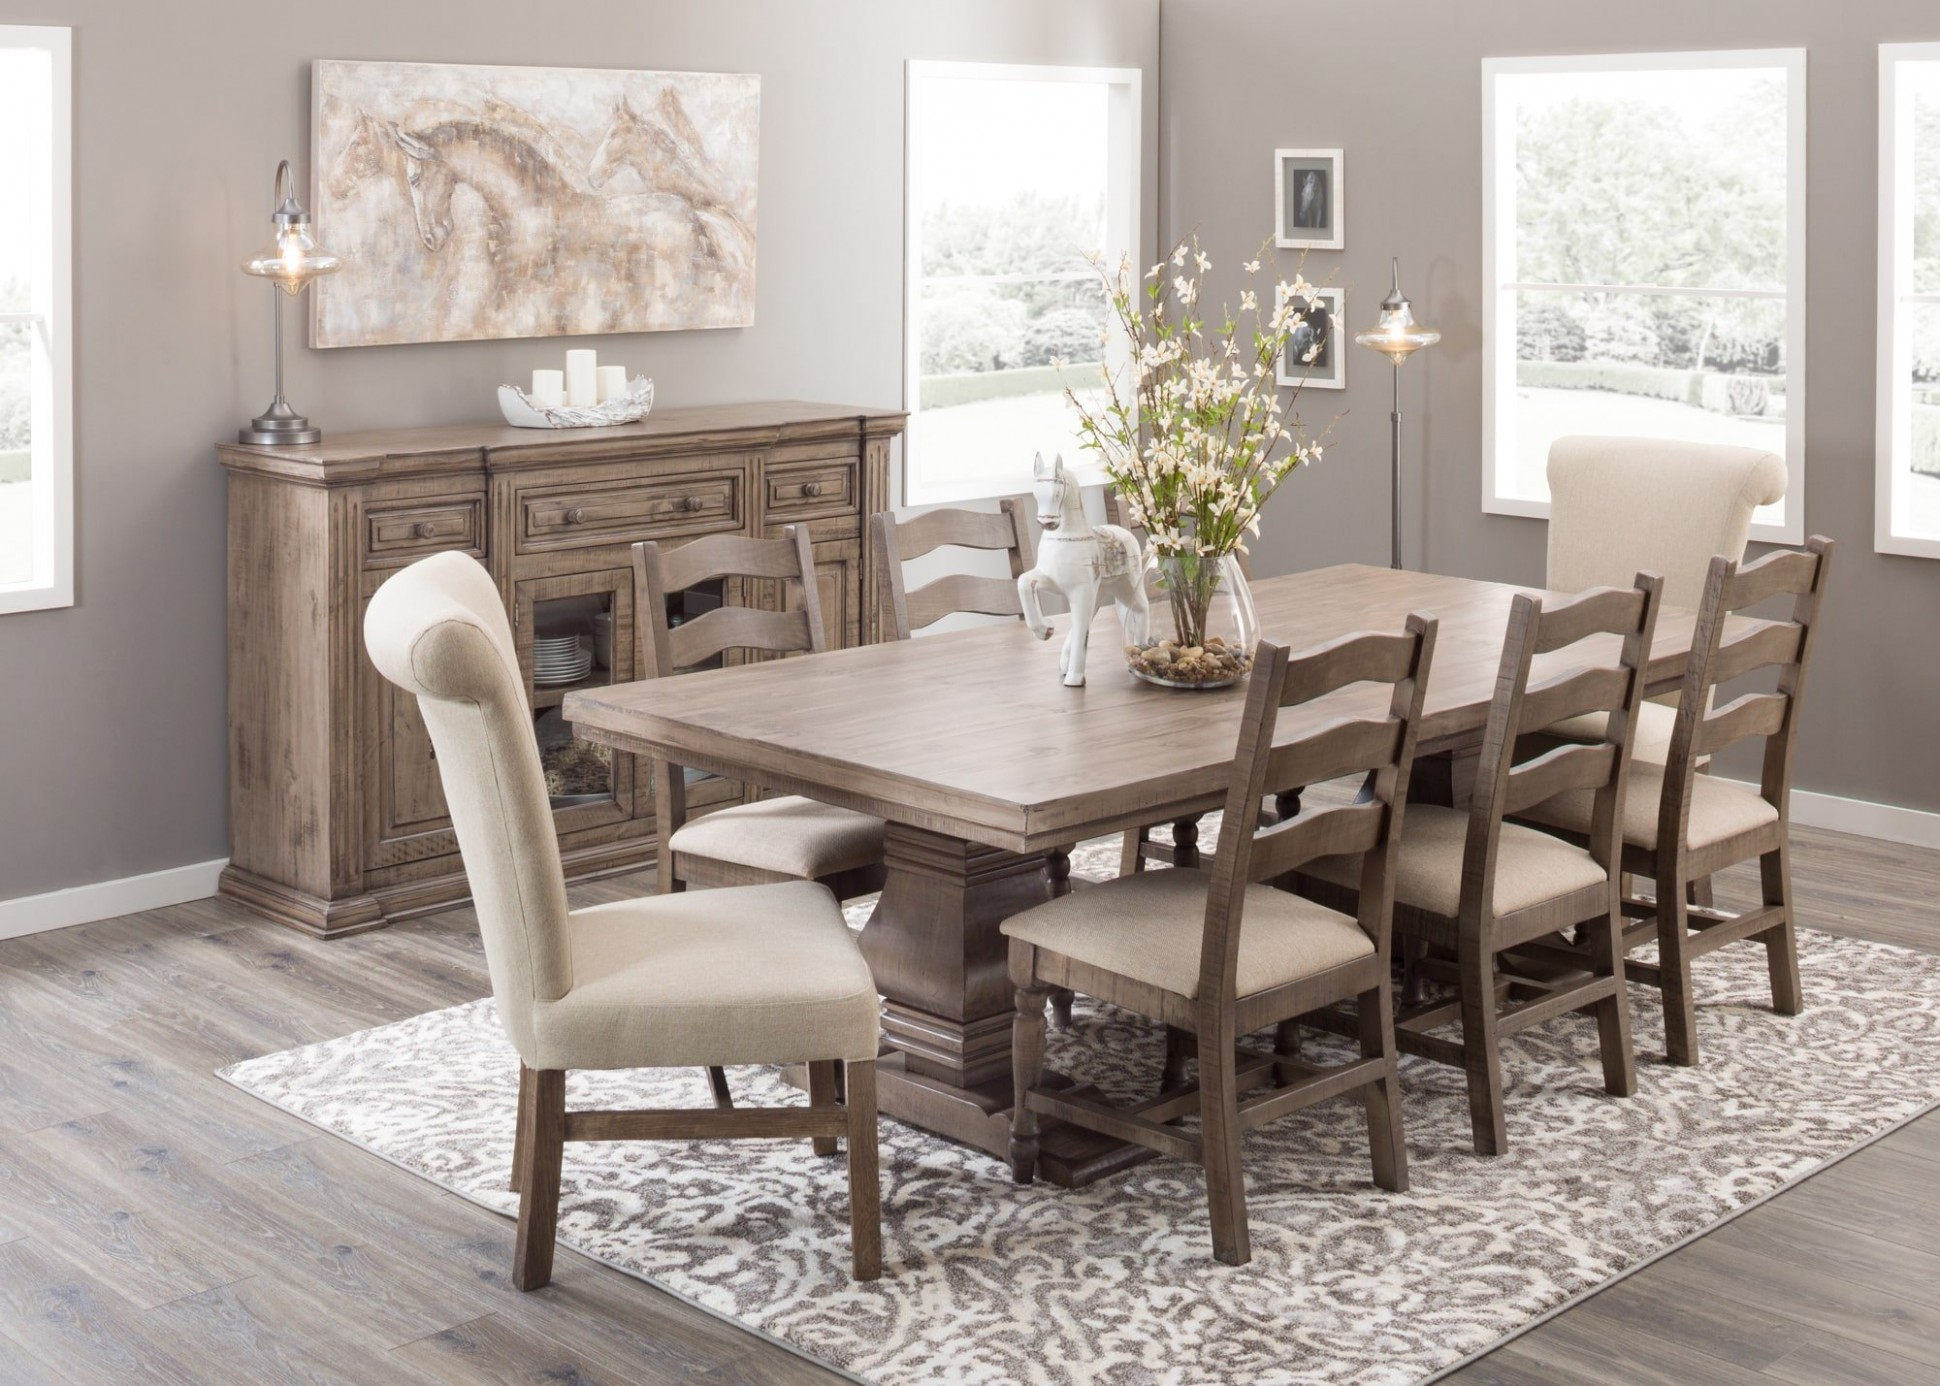 Simple Dining Room Decorating Tips  AFW